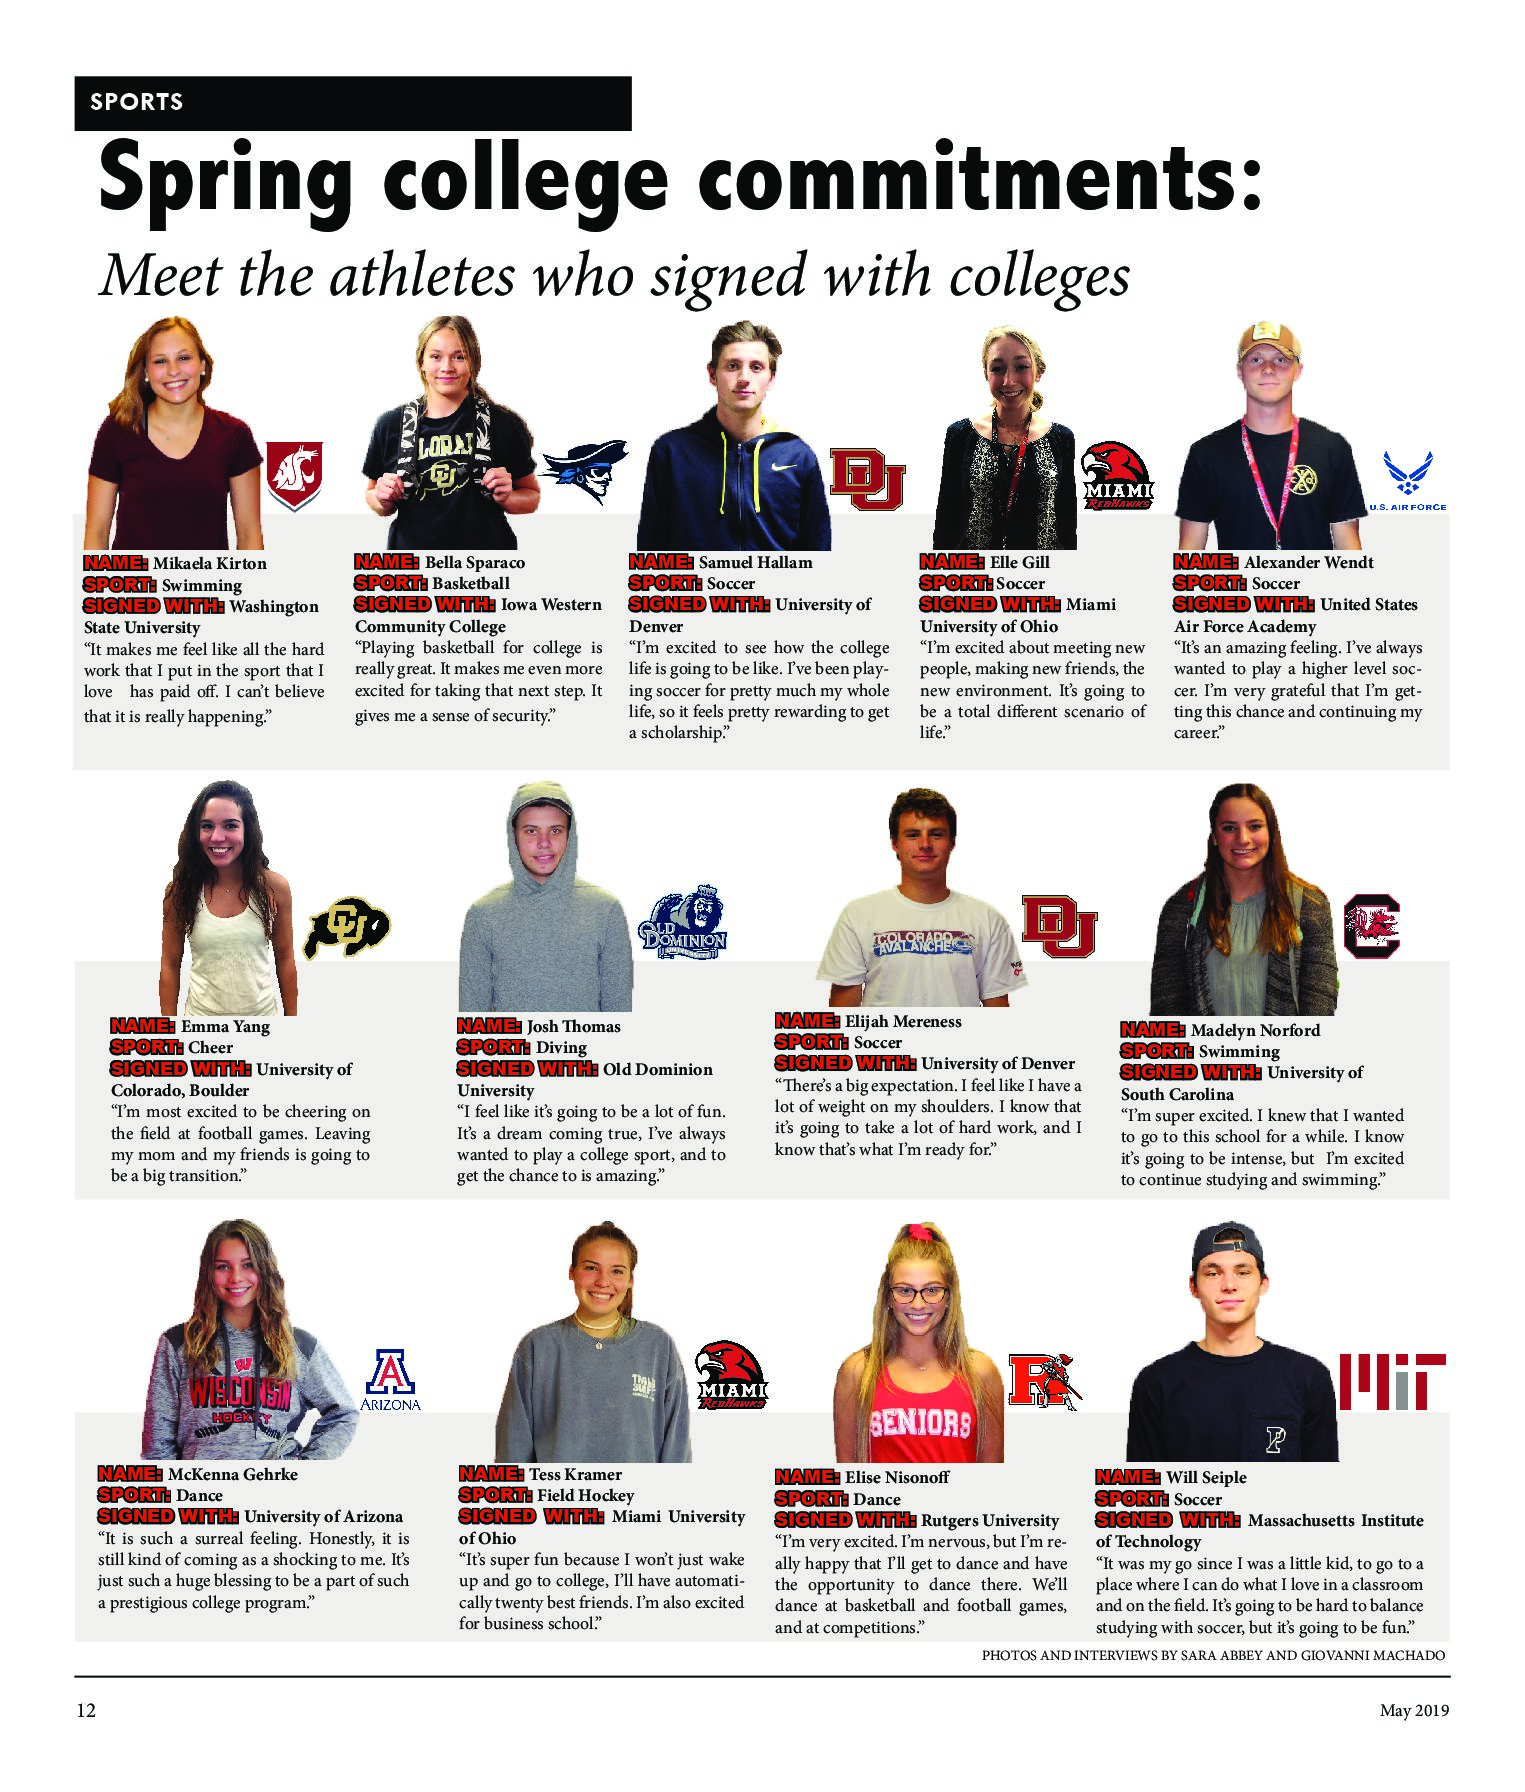 Meet the athletes who signed with colleges this spring